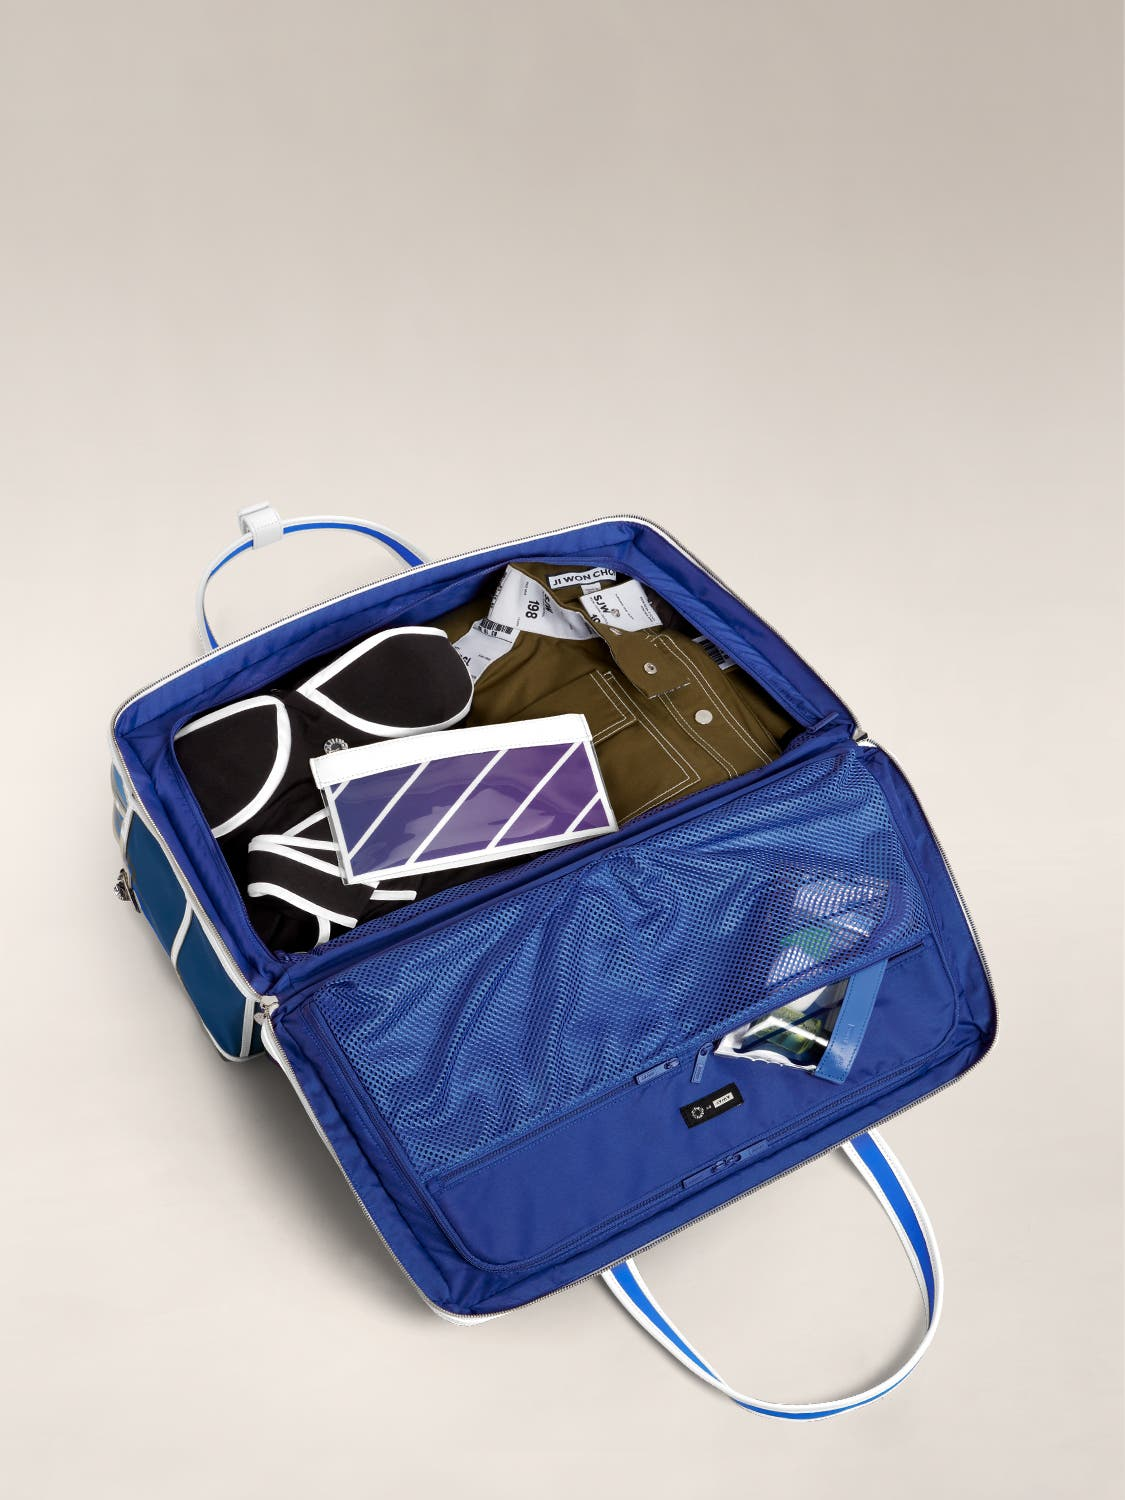 Open view of The Large Everywhere Bag by Ji Won Choi packed with clothes and a travel pouch